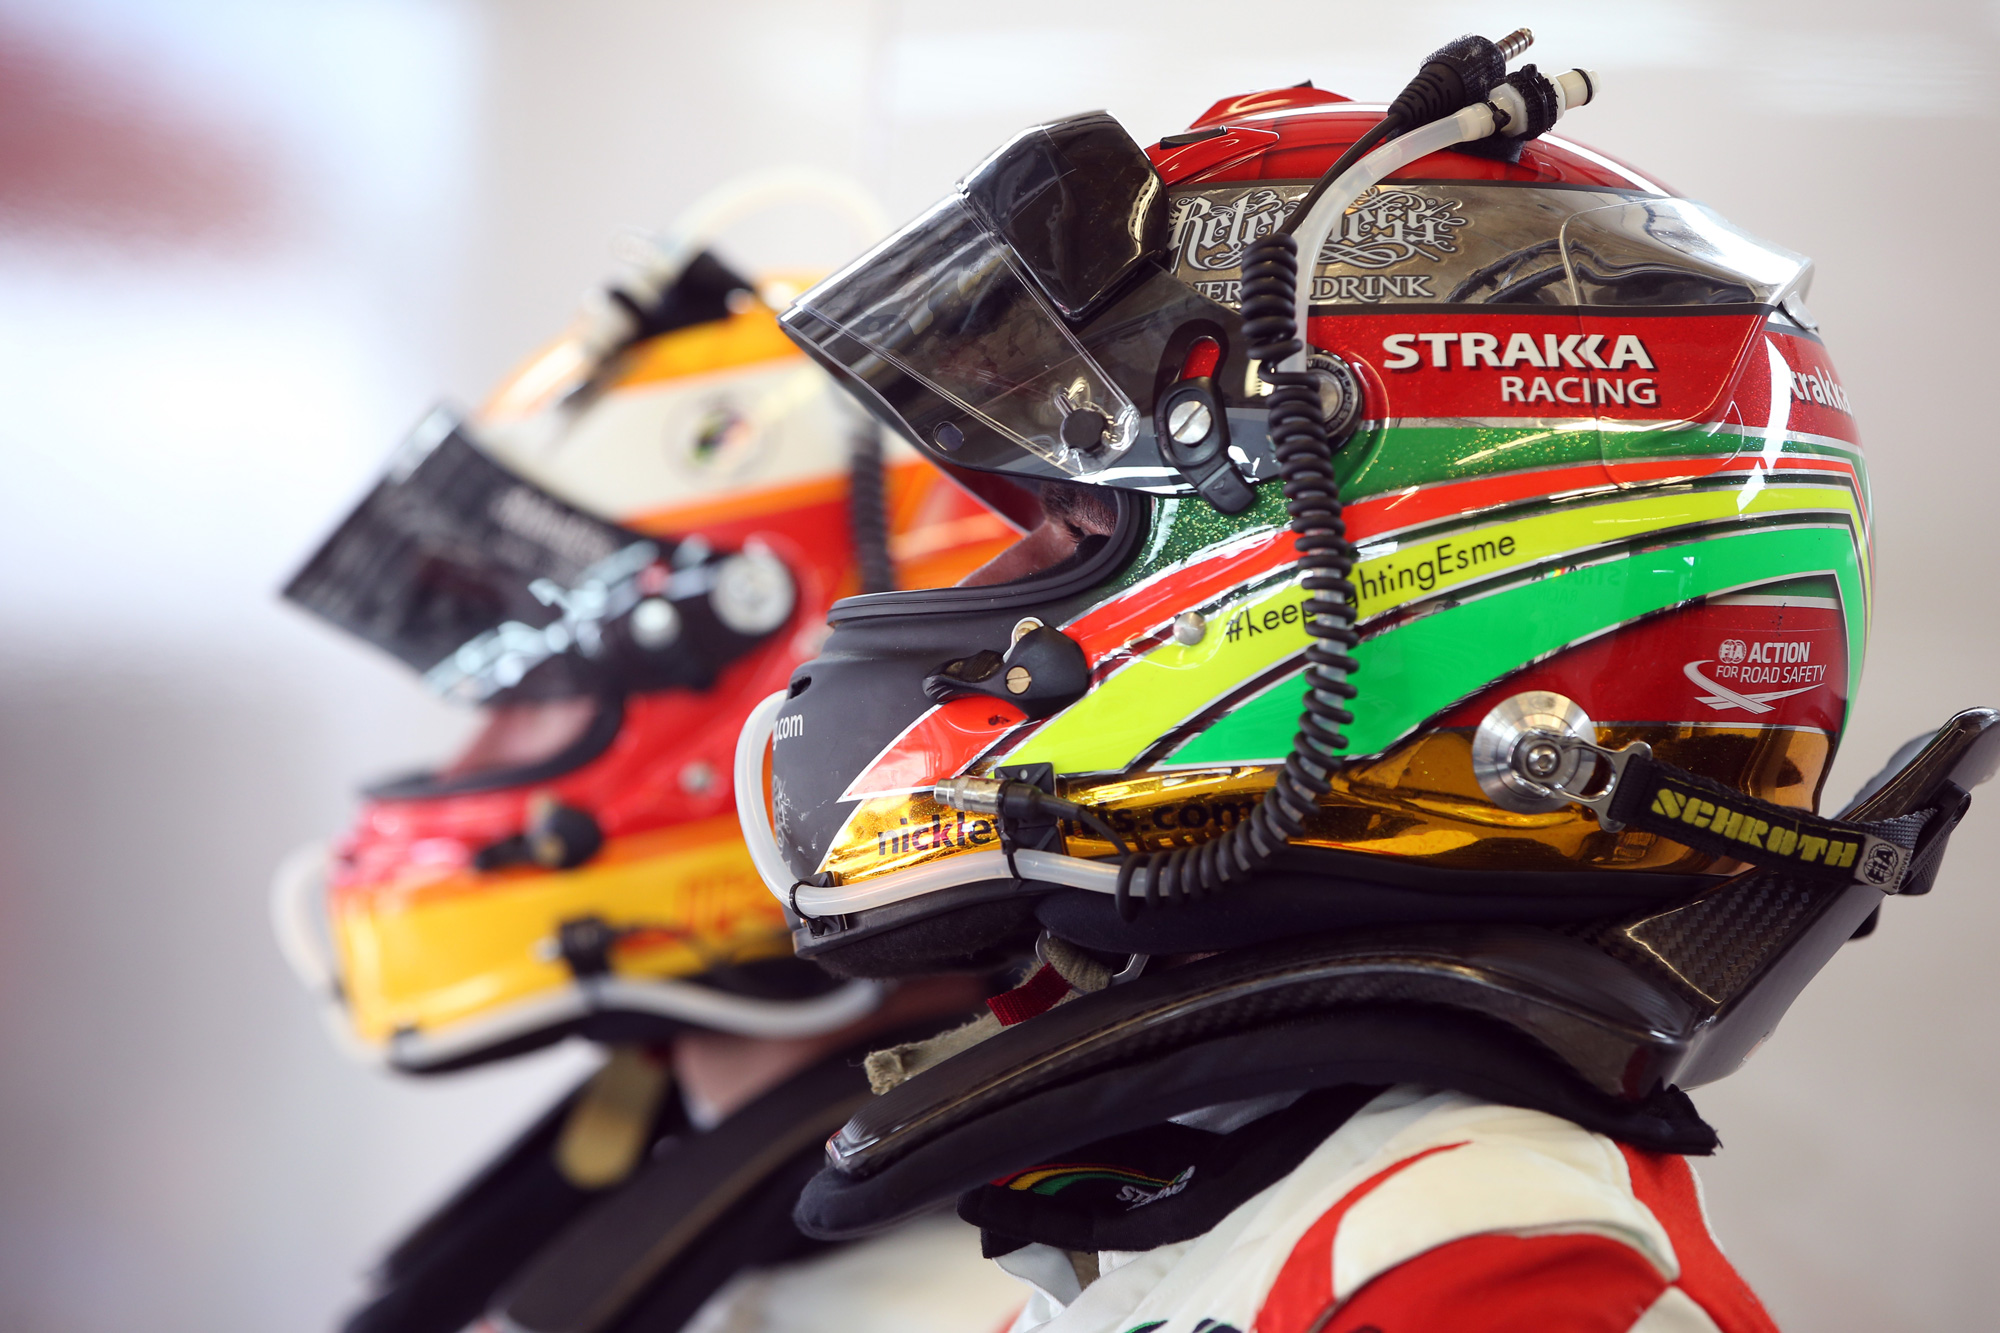 Interview With Nick Leventis, Racing Driver And Founder Of Strakka Racing 6